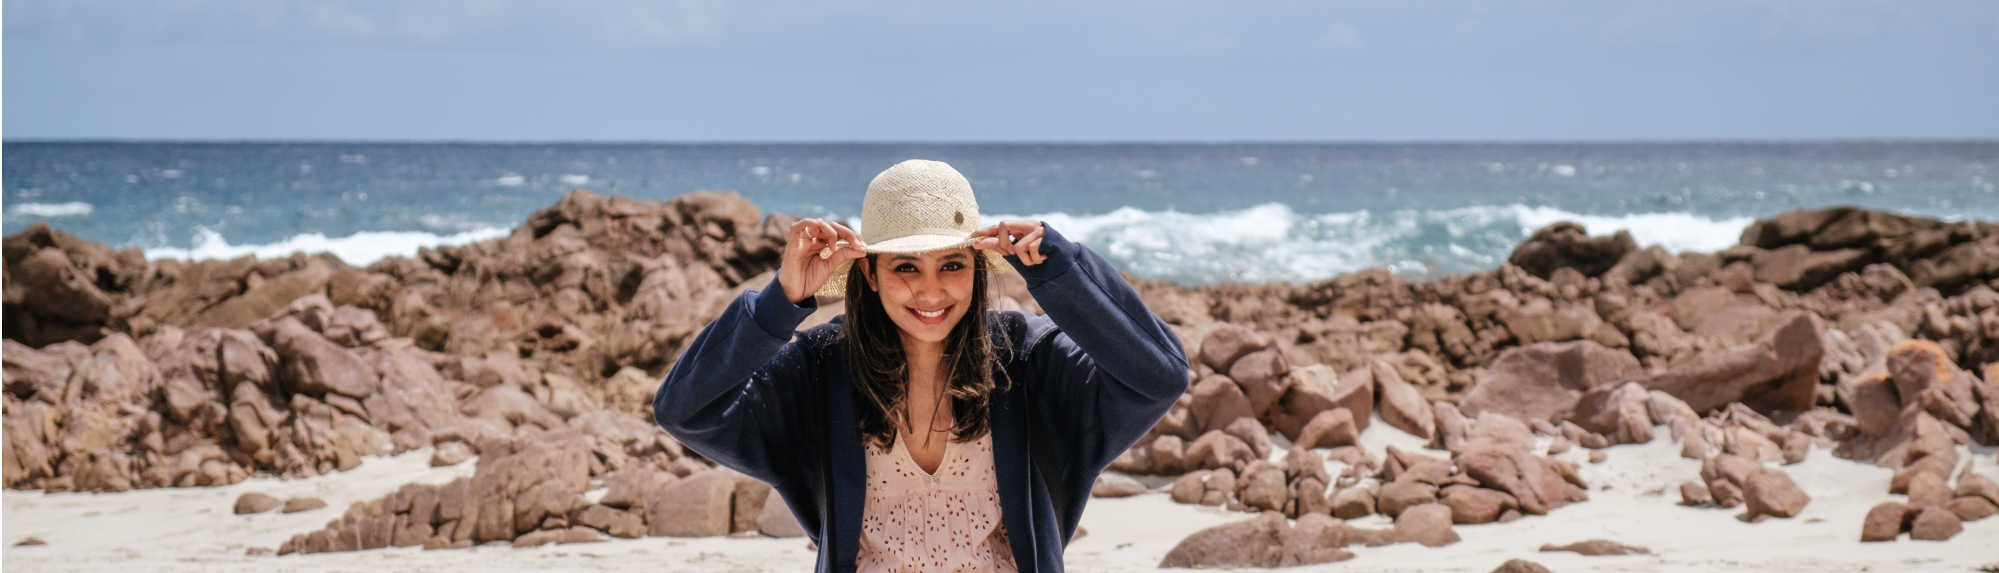 Can I Really See Kangaroo Island in a Day?